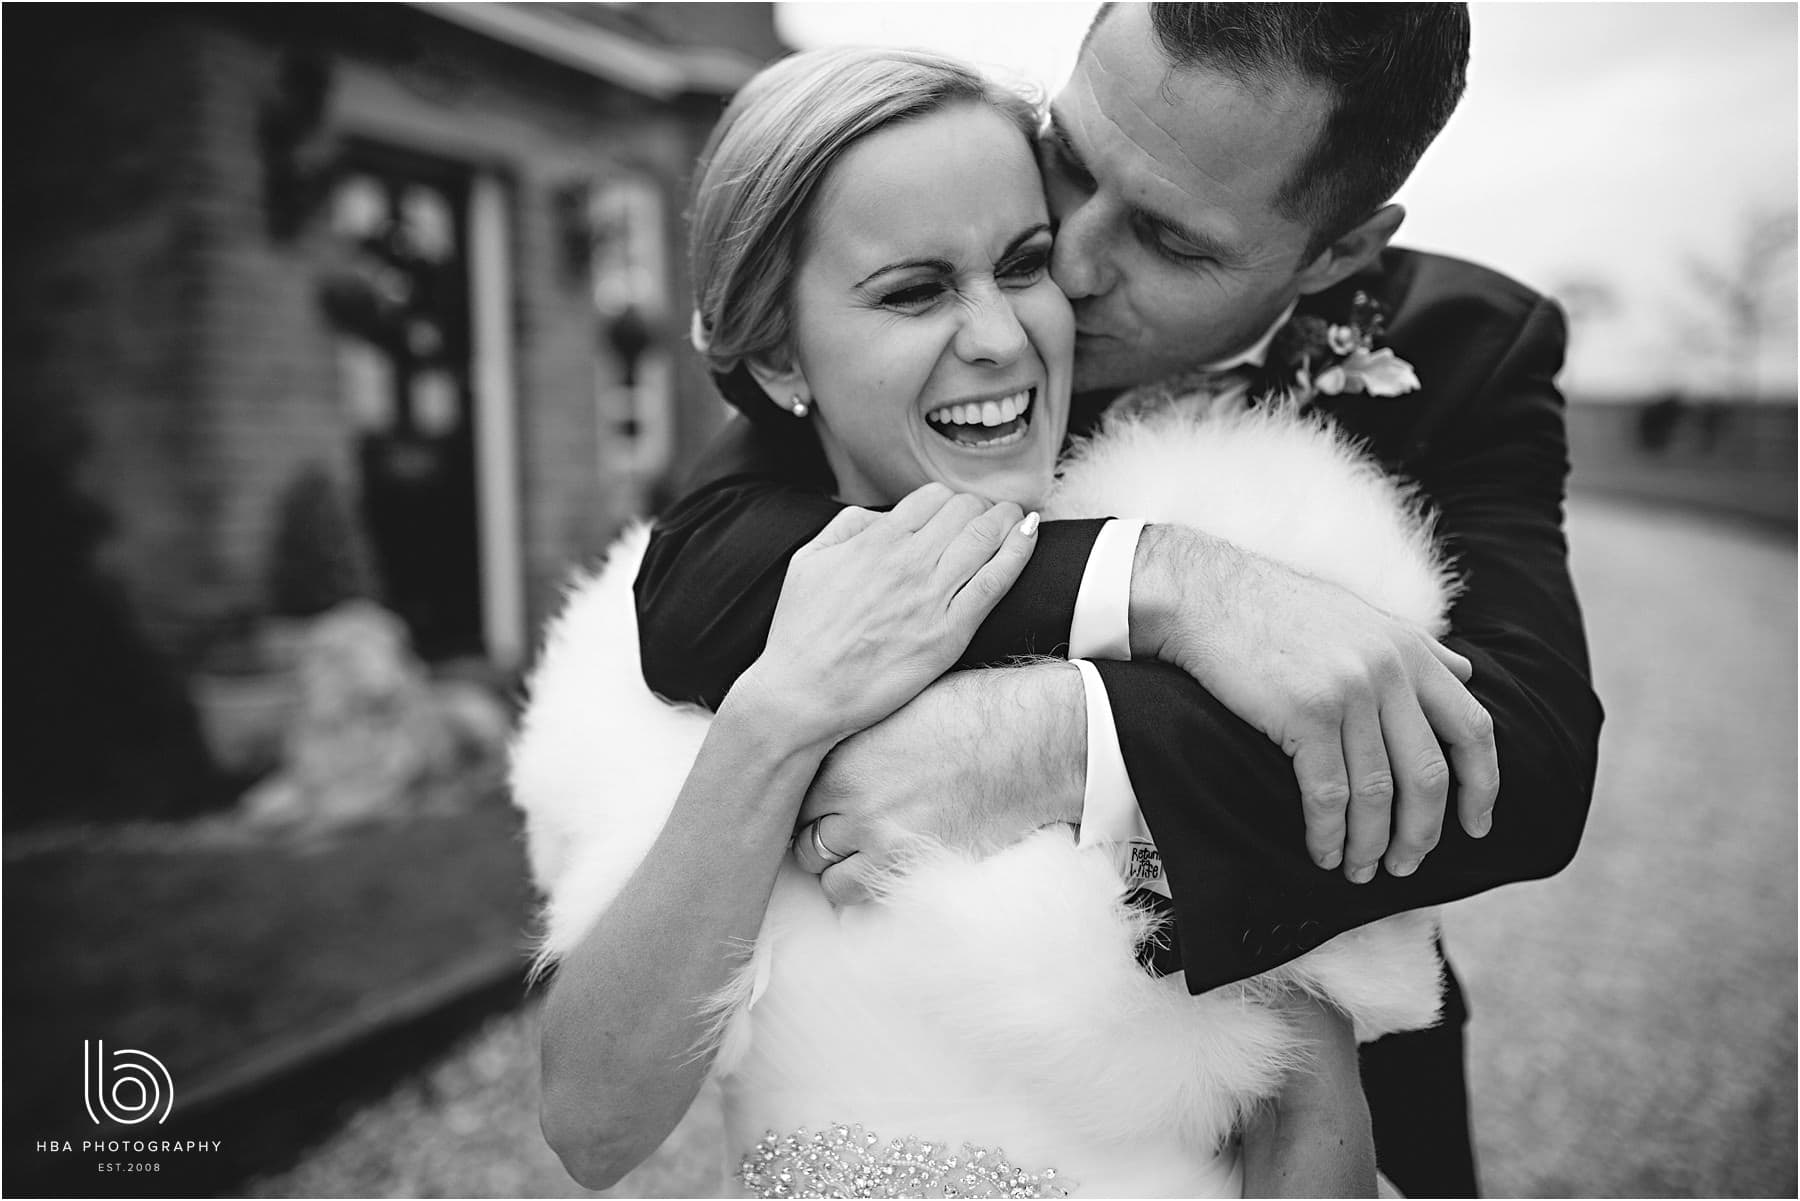 The bride and groom hugging each other laughing in black-and-white